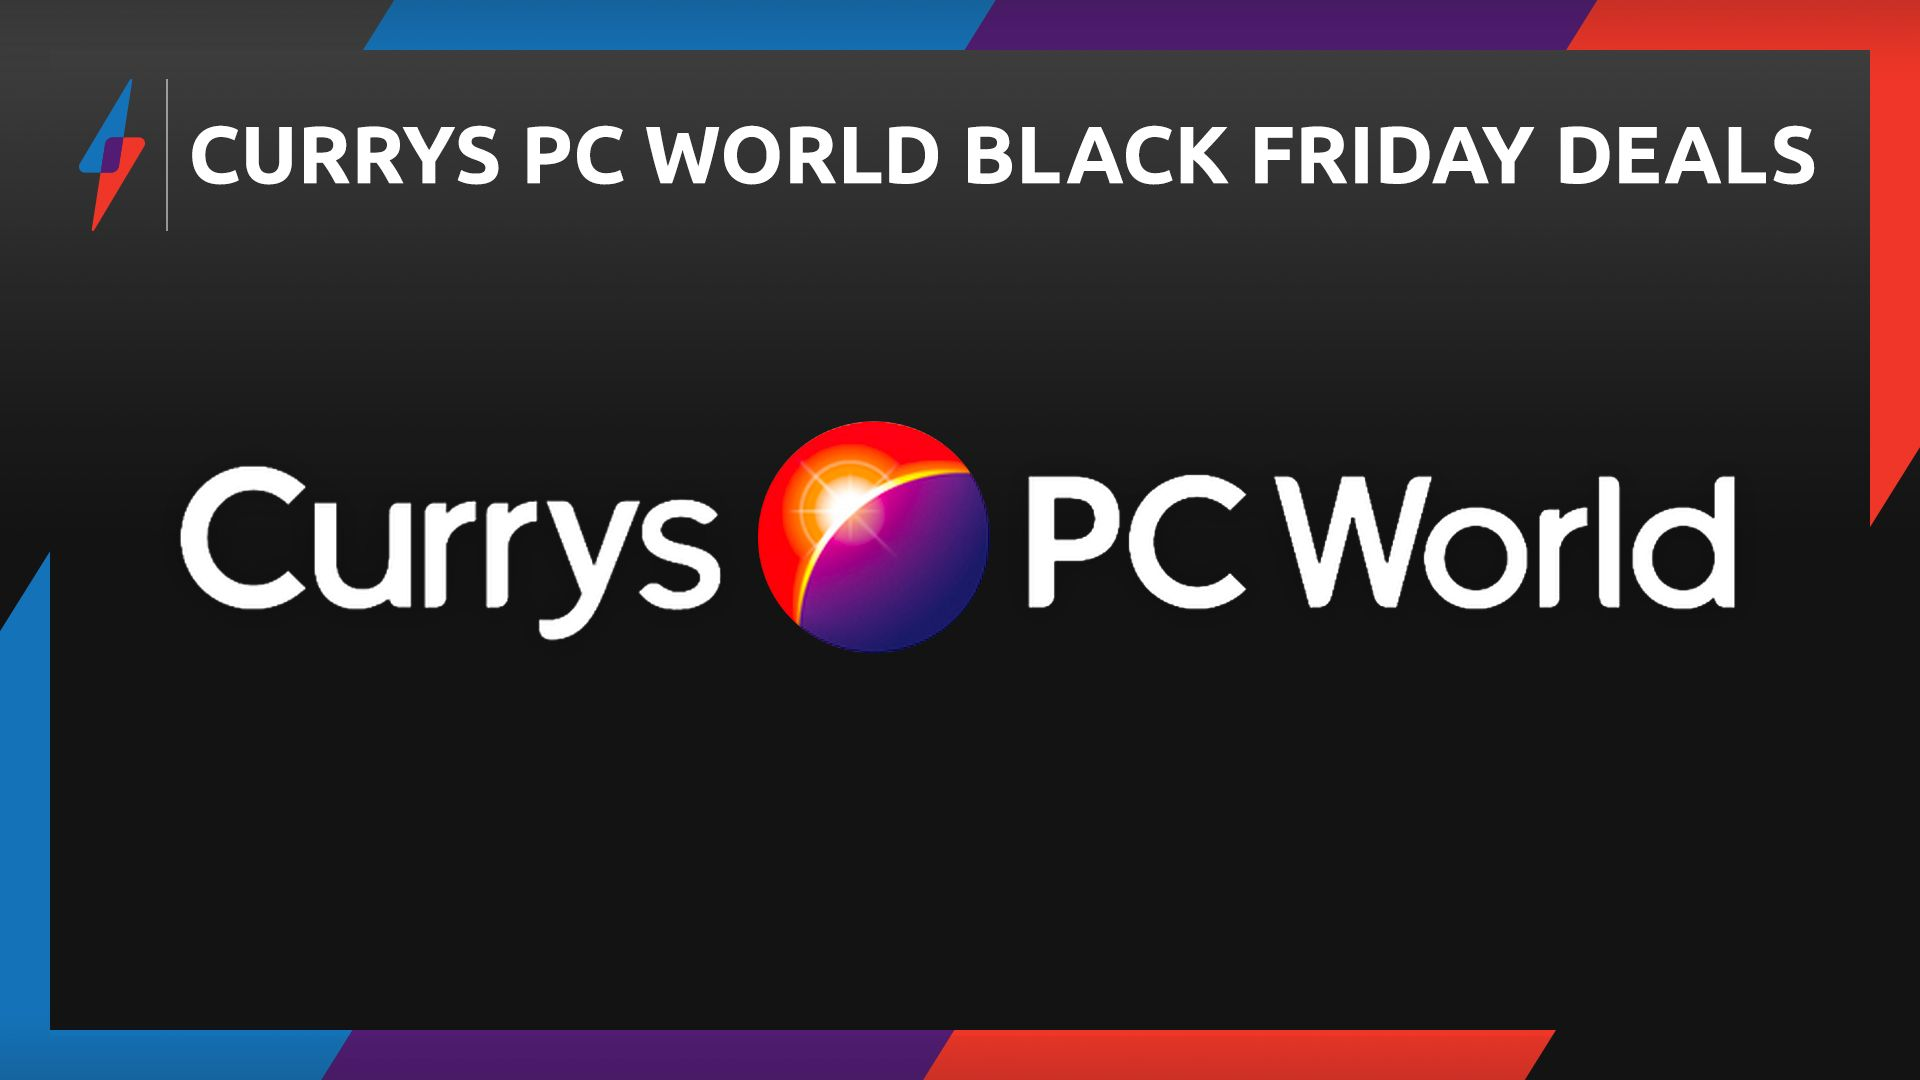 Currys Pc World Black Friday Deals What To Know About The 2019 Sale Currys Pc World Black Black Friday Deals Black Friday Best Black Friday